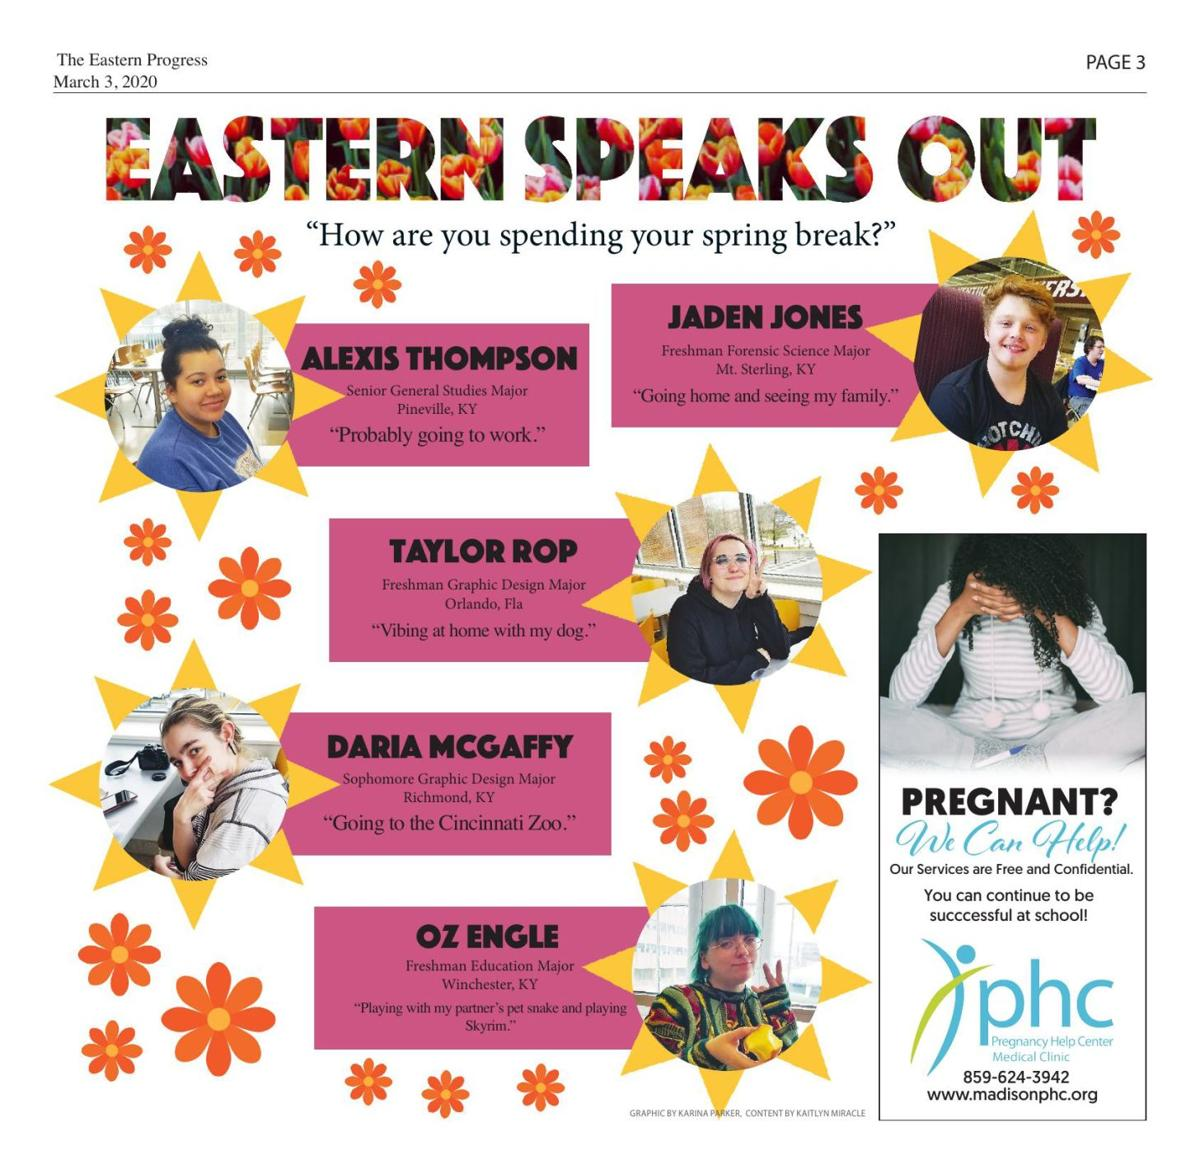 Eastern Speaks Out: What are you doing for spring break?